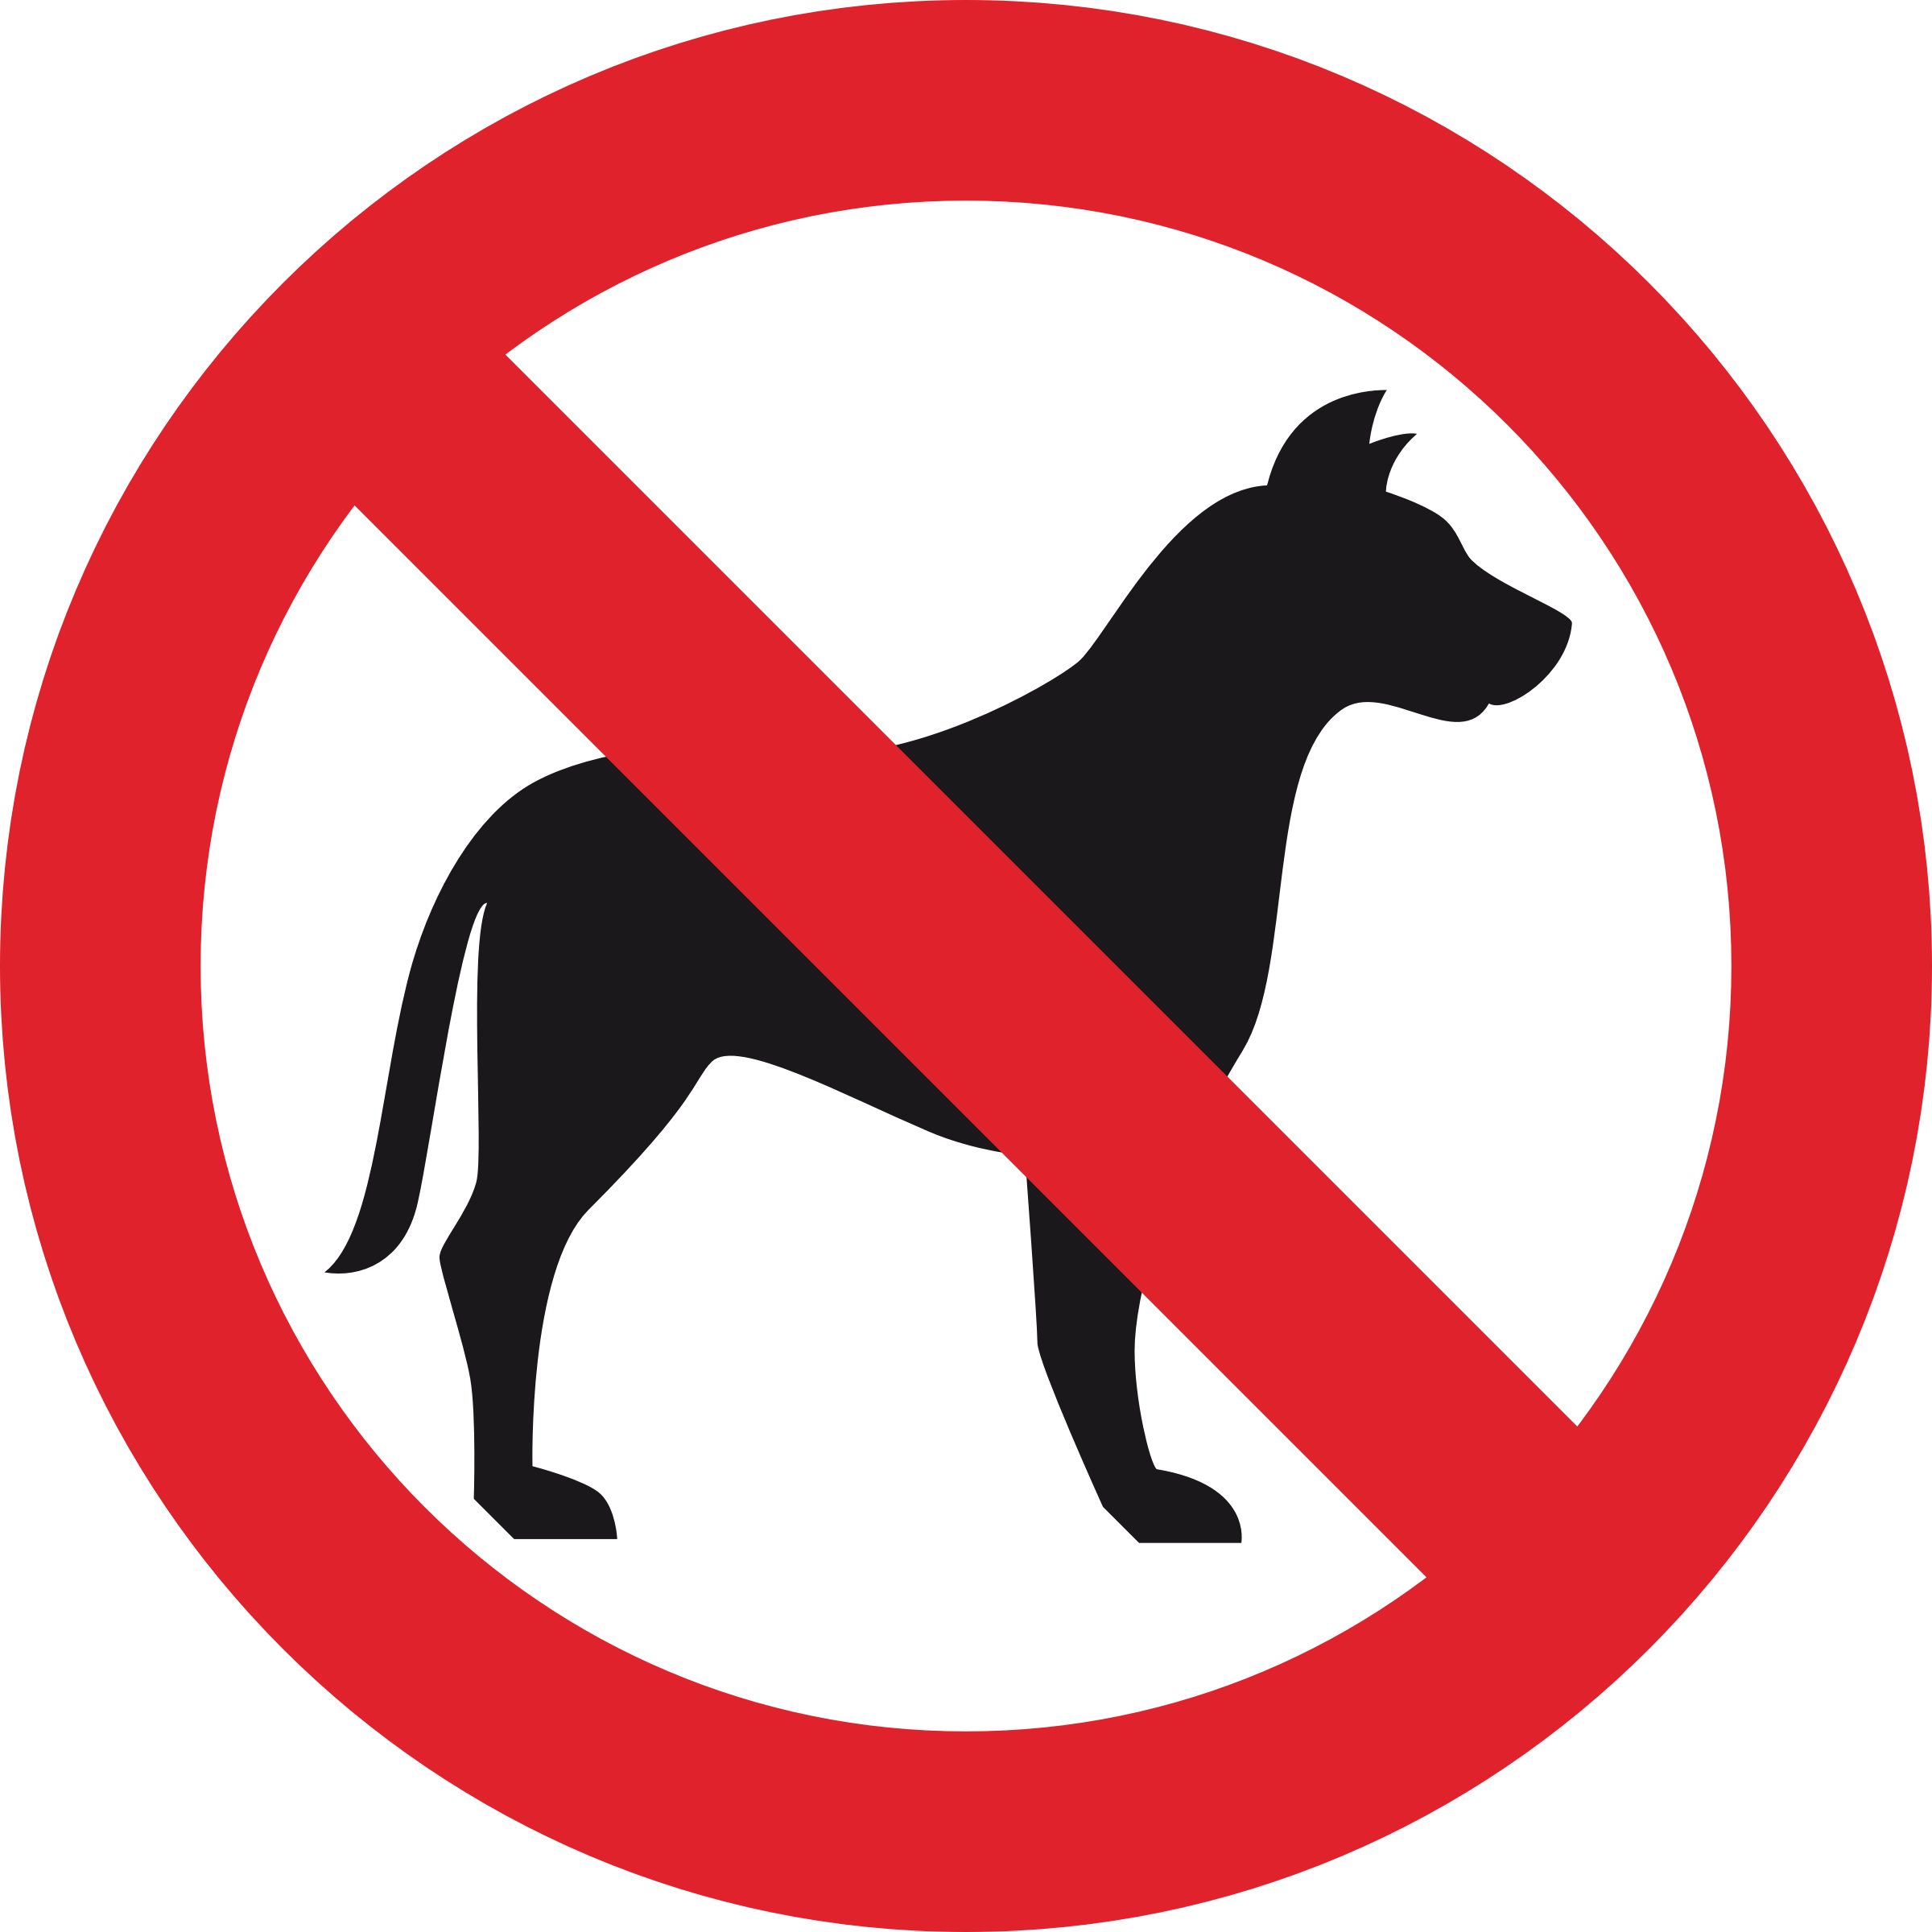 Dog pooping png. No sign icons free